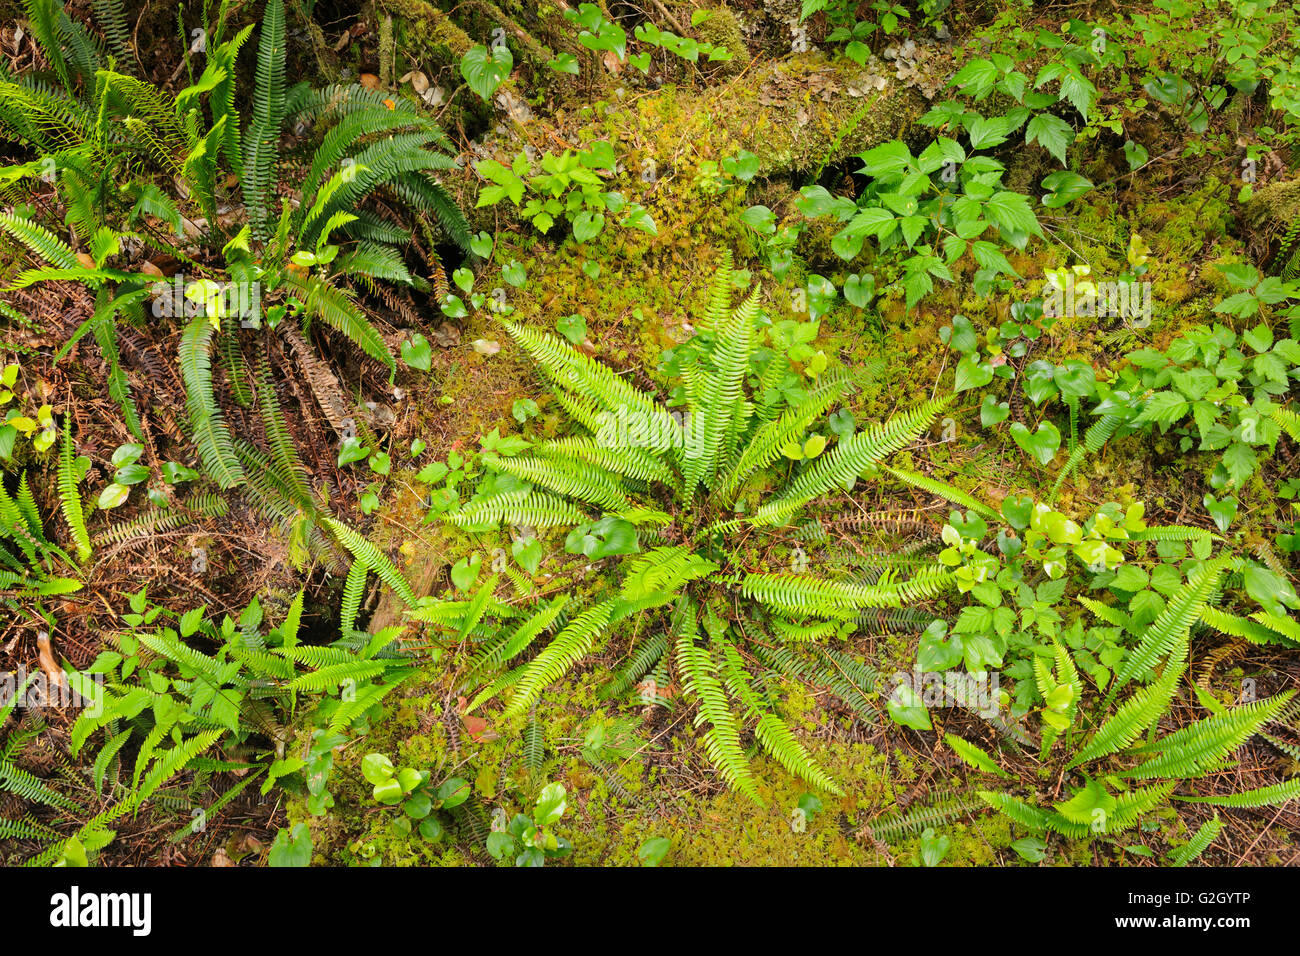 Ferns in undergrowth of forest Helliwell Provincial Park British Columbia Canada Stock Photo